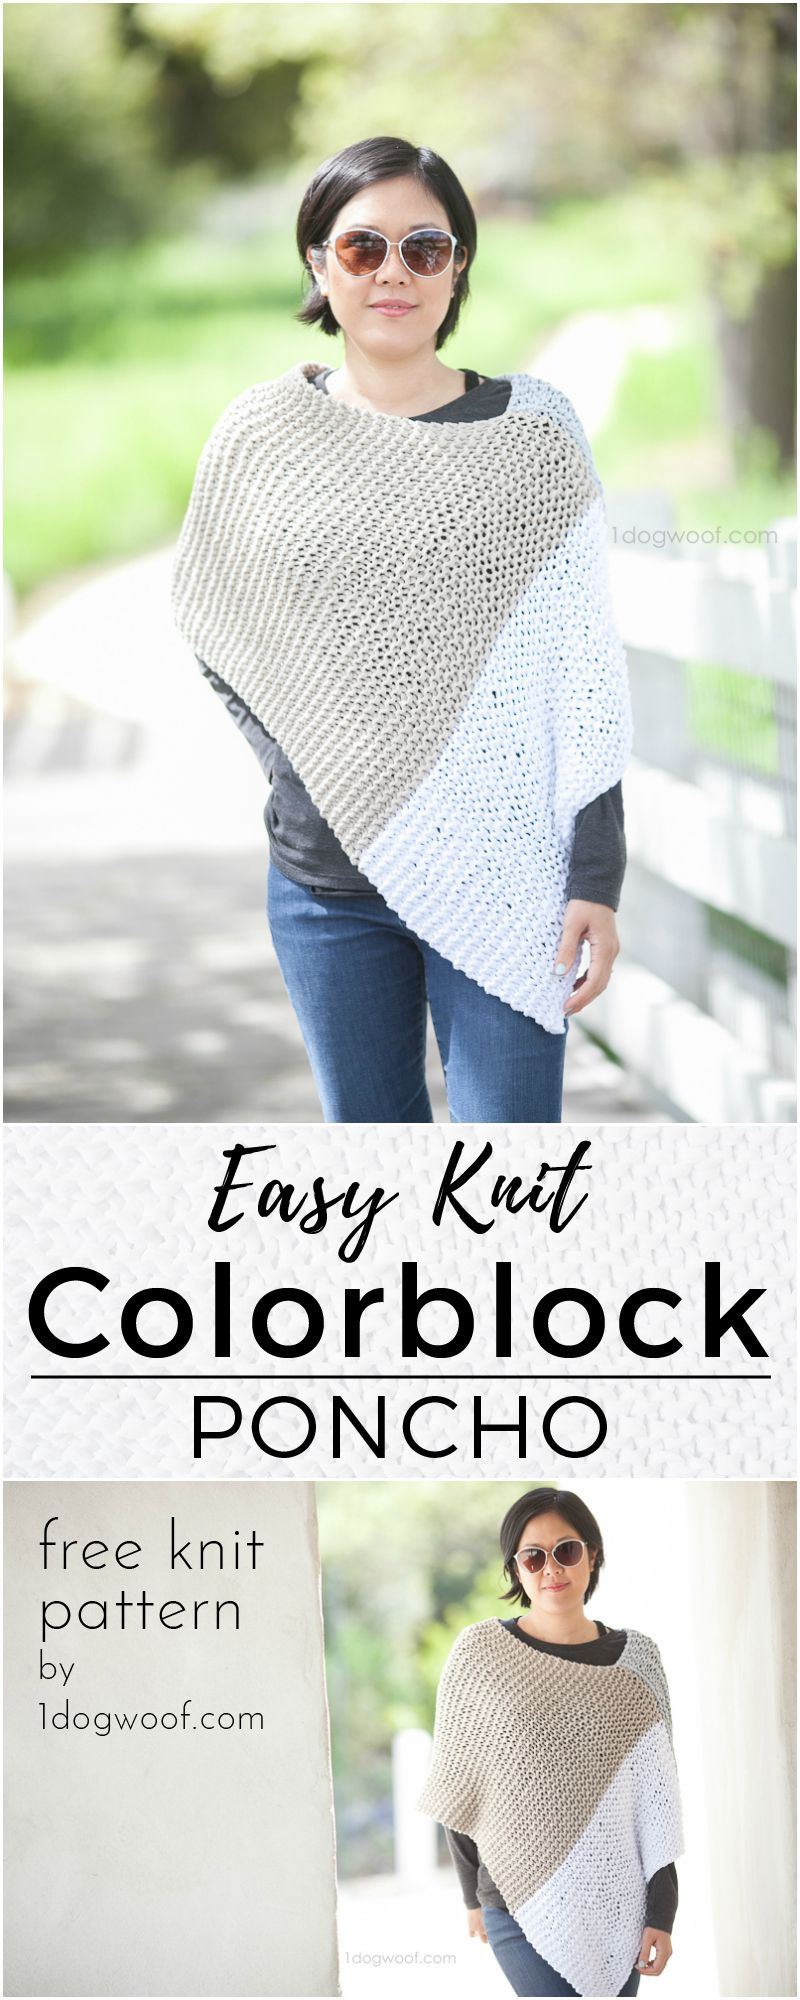 Easy Knit Catalunya Colorblock Poncho | Crochet | Pinterest ...